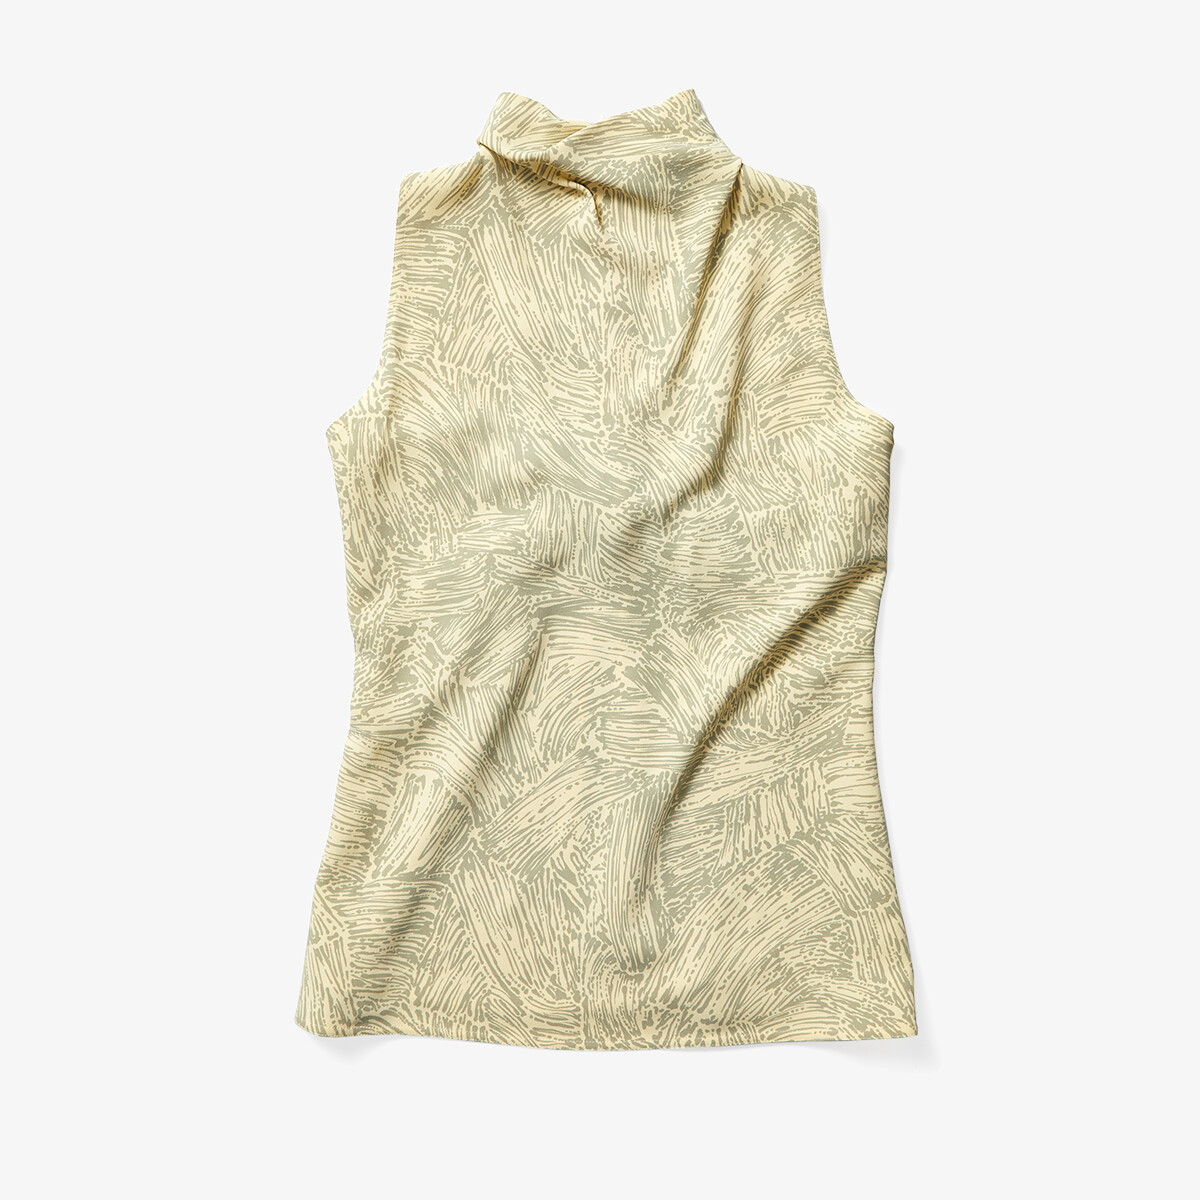 Imbracaminte Femei Proenza Schouler Printed Cady Sleeveless Knotted Back Top ButterTaupe